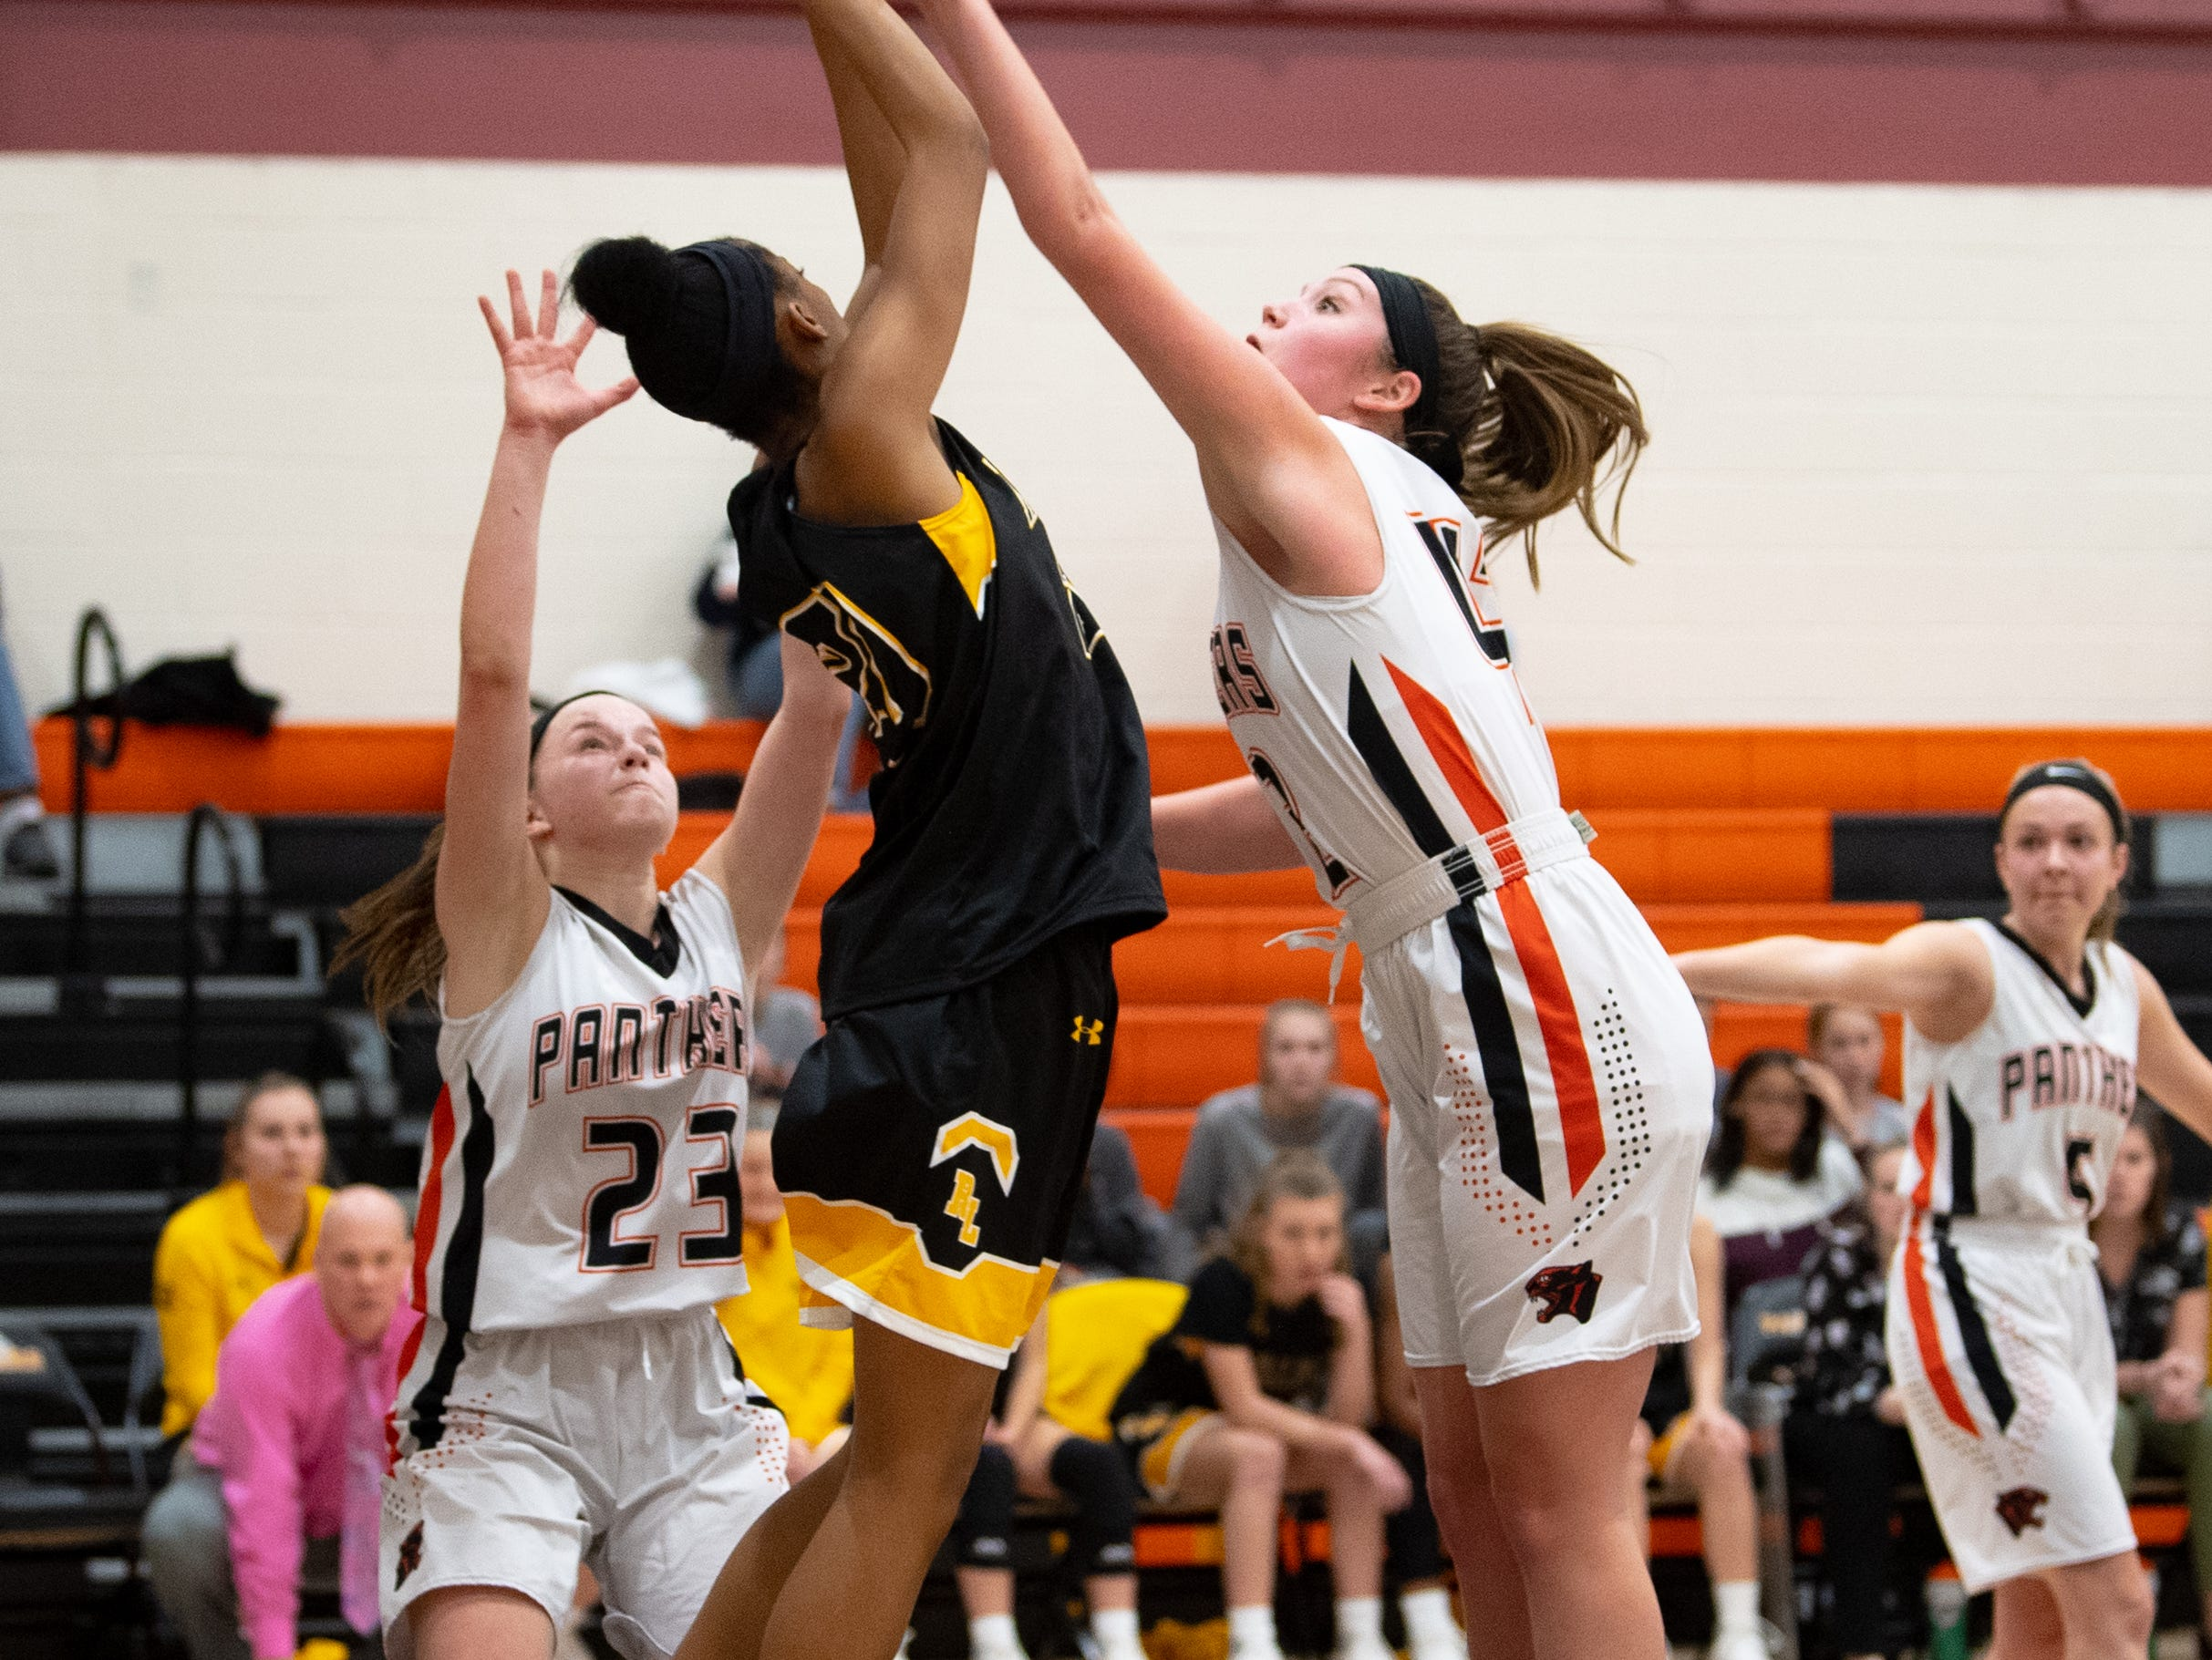 Makiah Shaw (20) of Red Lion receives the pass during the girls' basketball game between Central York and Red Lion at Central York, Tuesday, December 11, 2018. The Panthers defeated the Lions 40-38.